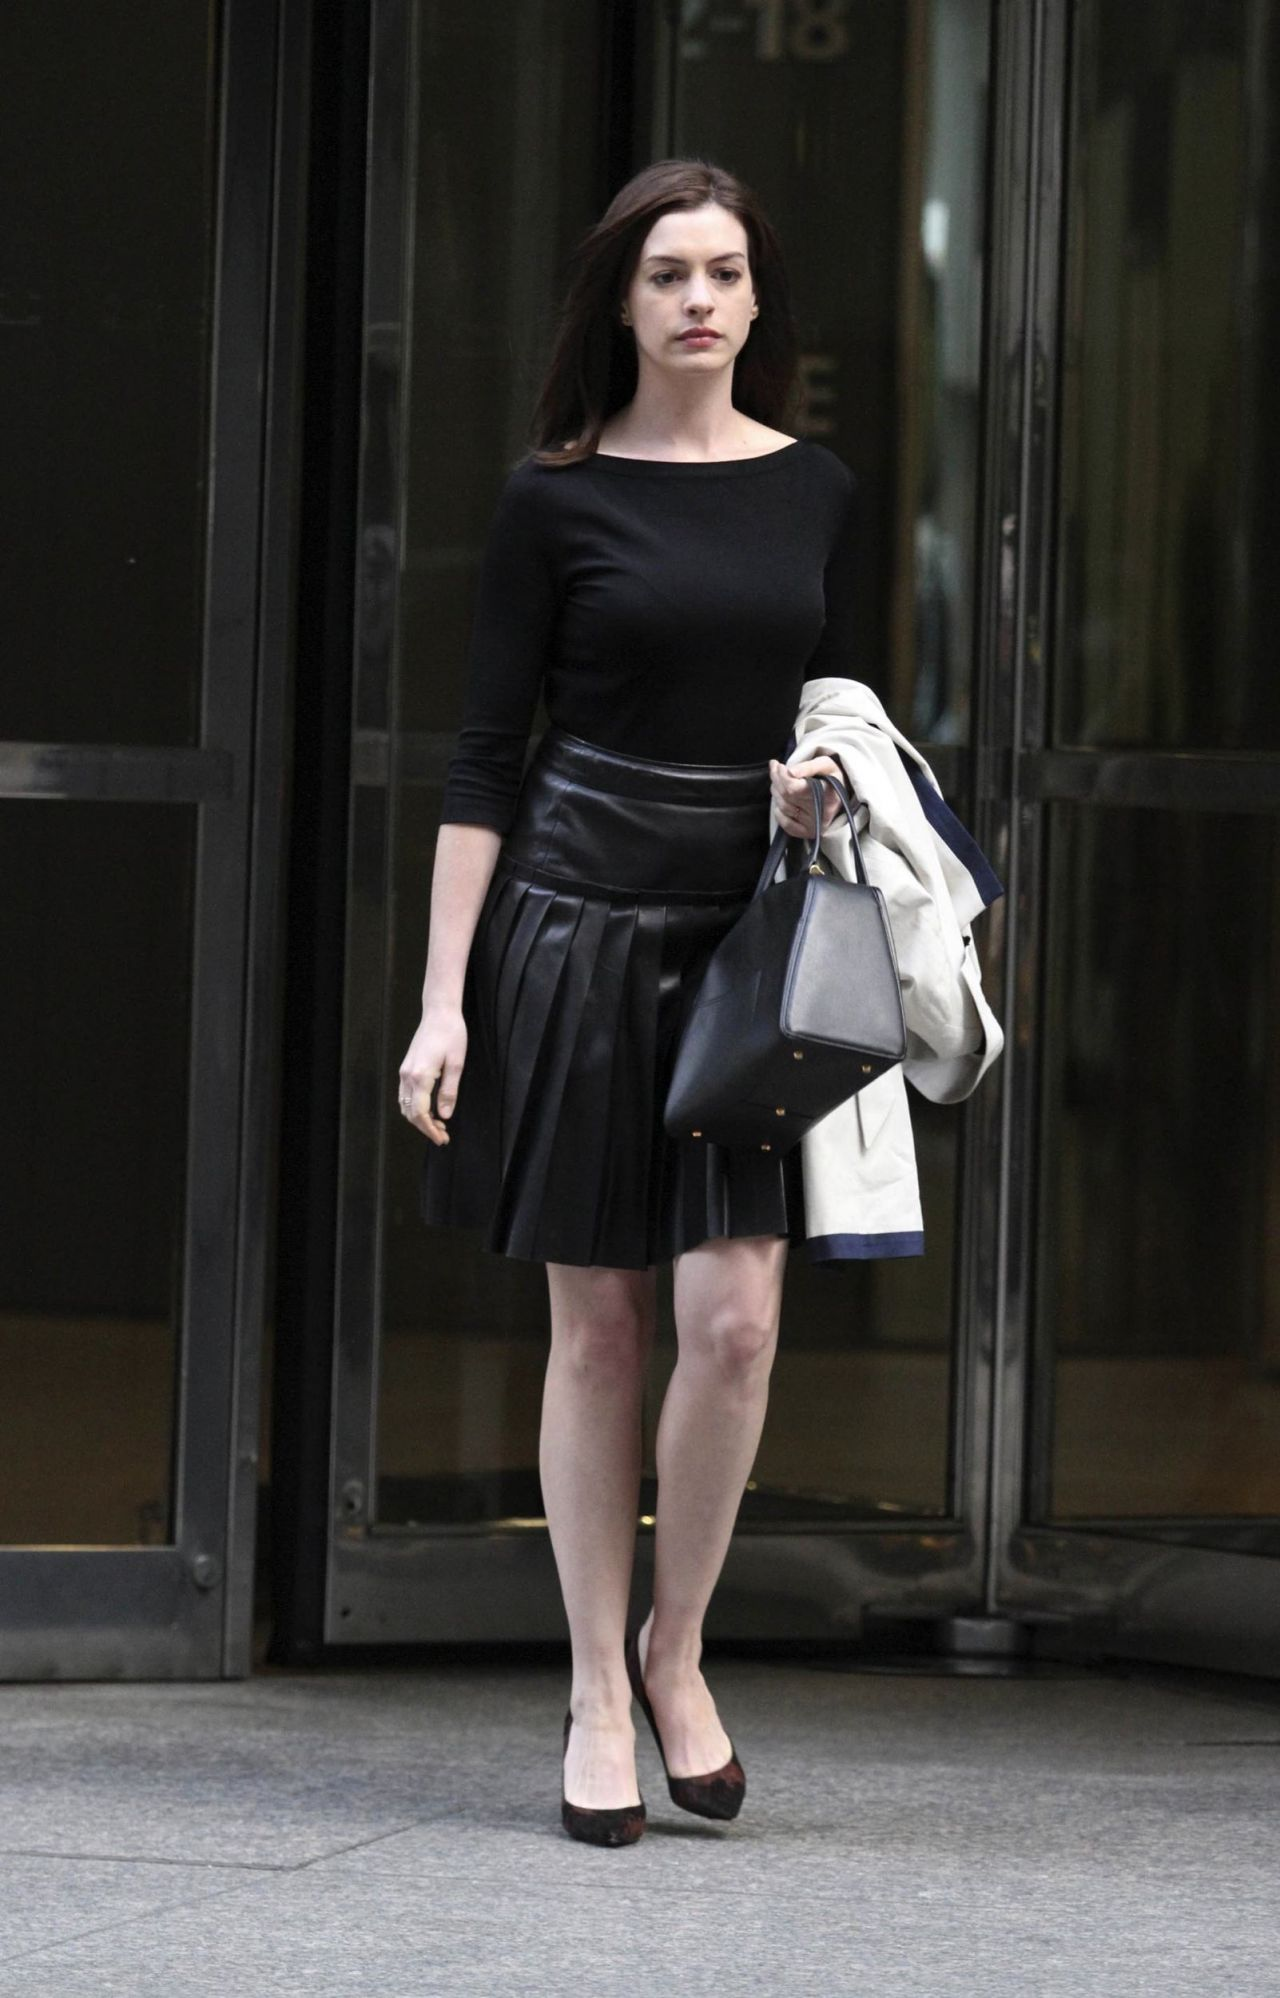 Anne hathaway in late night with jimmy fallon 2012 - 1 9